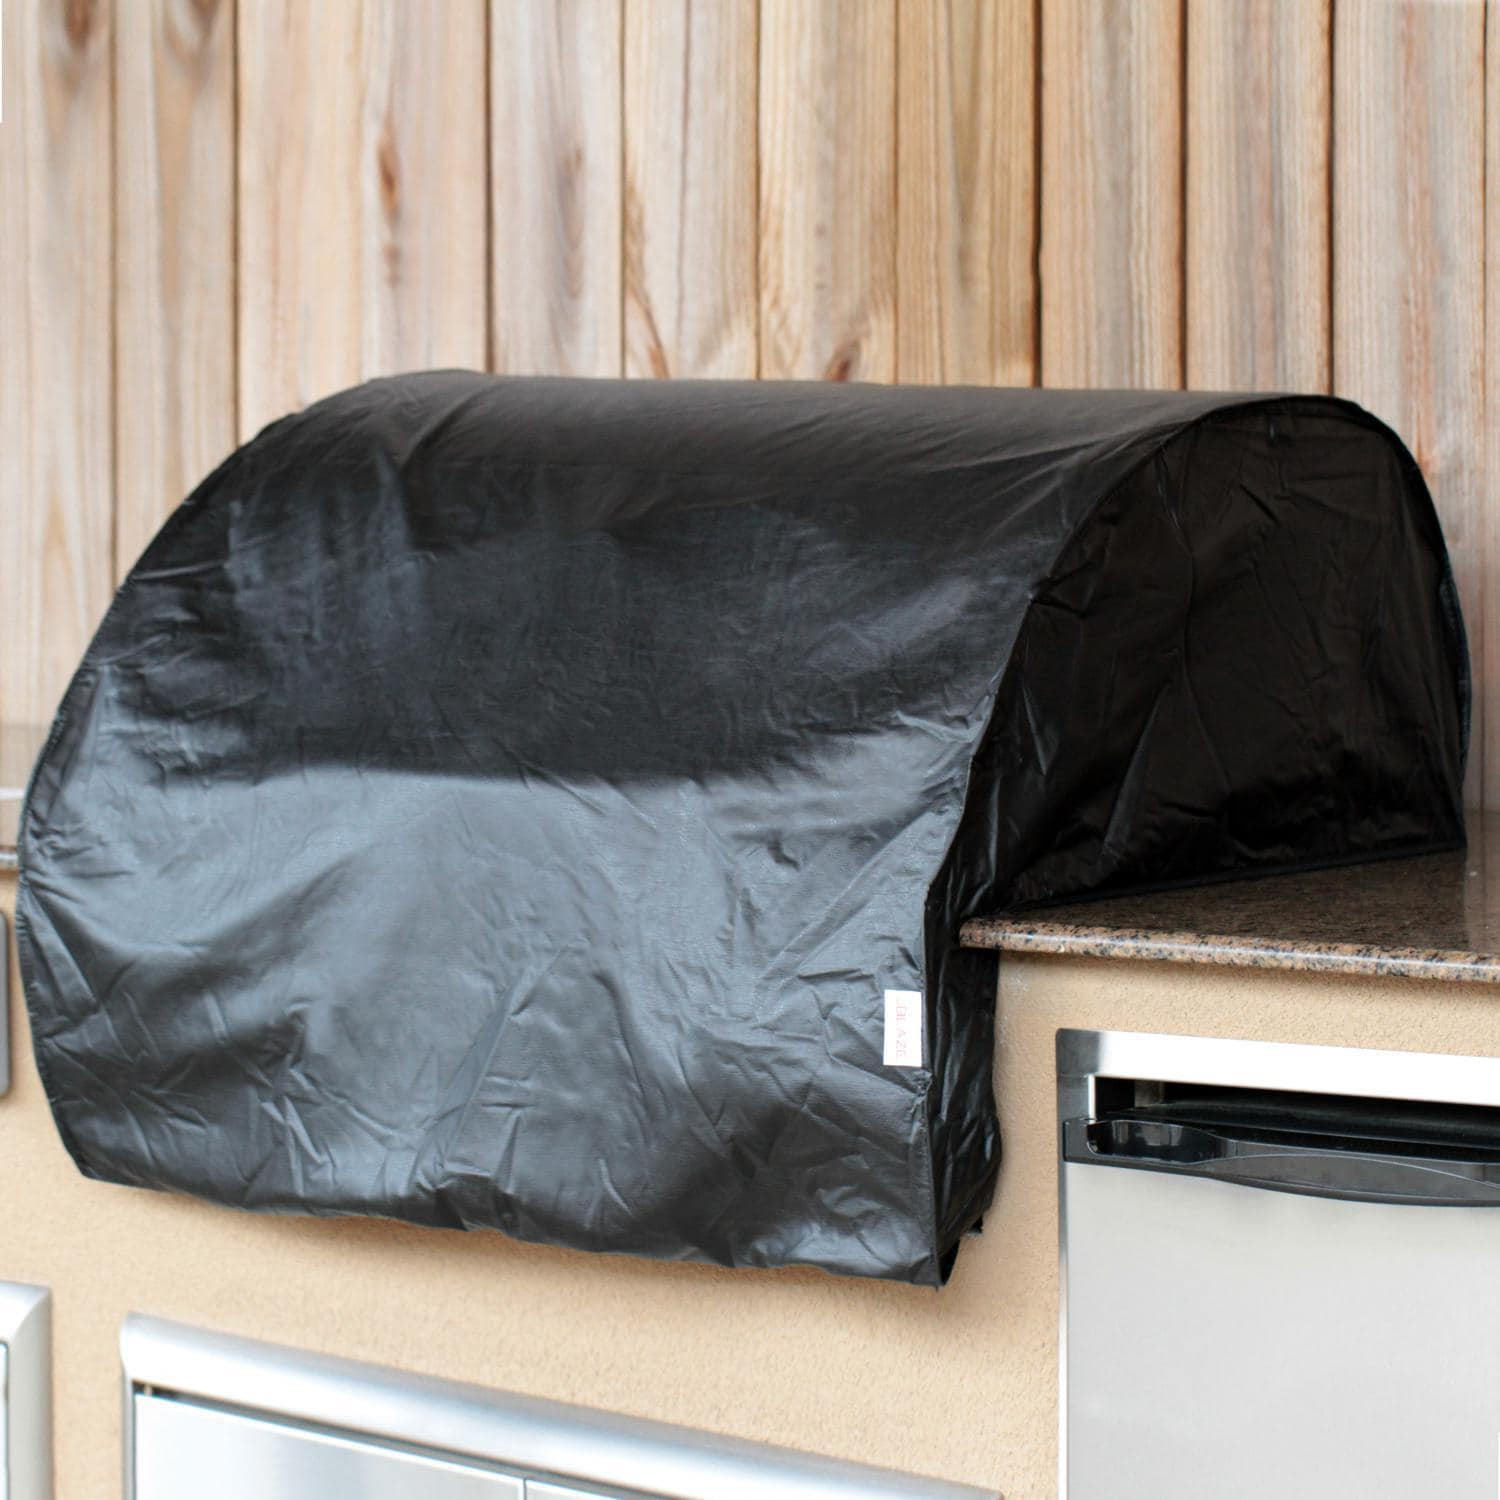 Blaze Grill Cover For Professional LUX 34-Inch Built-In Gas Grills - 3PROBICV